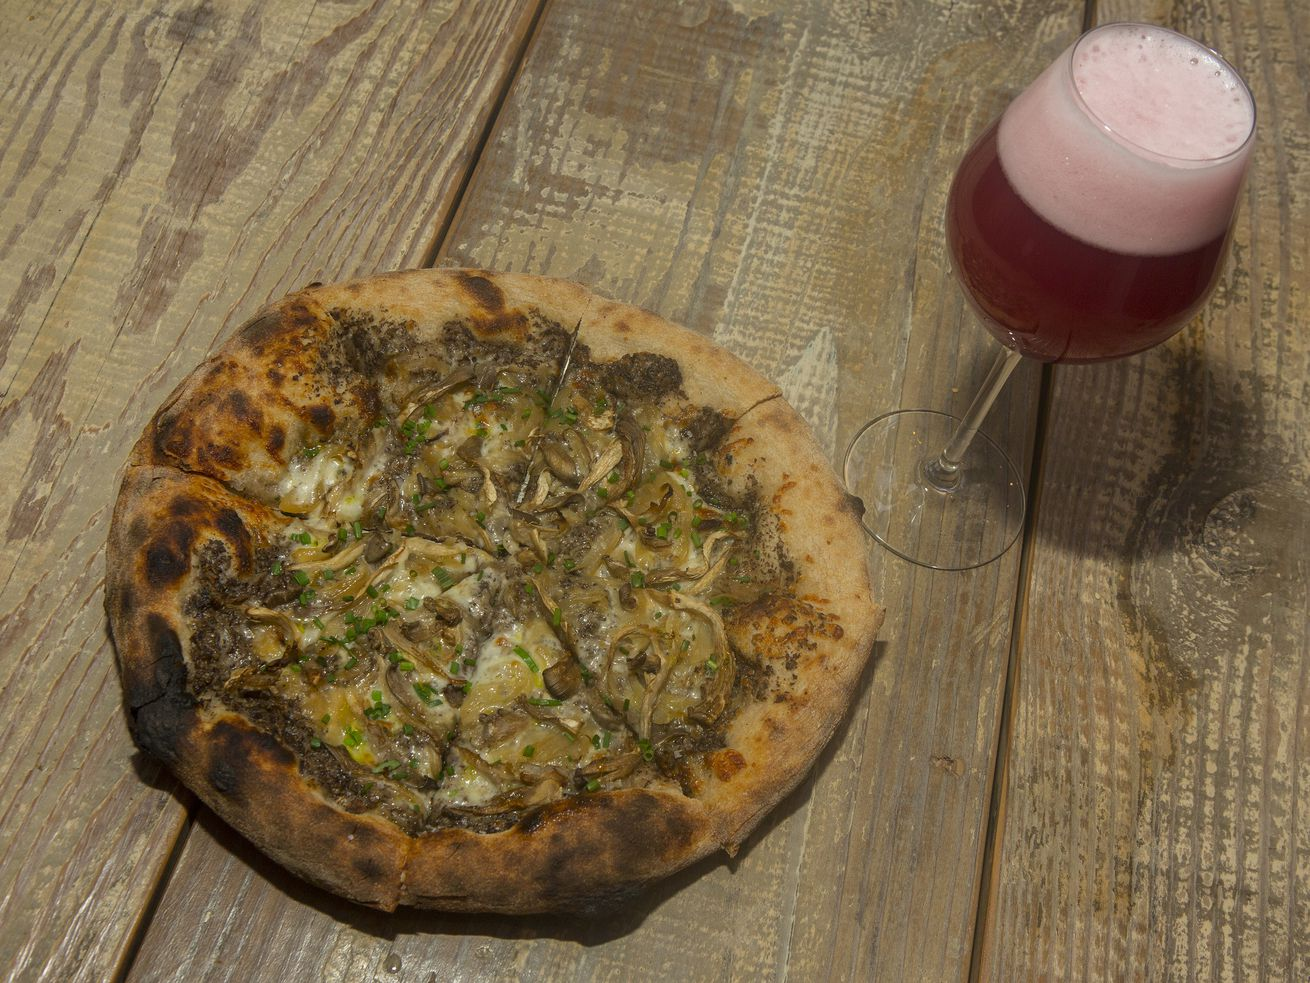 Pizza and beer is an undefeated combo and featured at Middle Brow Beer Bungalow.